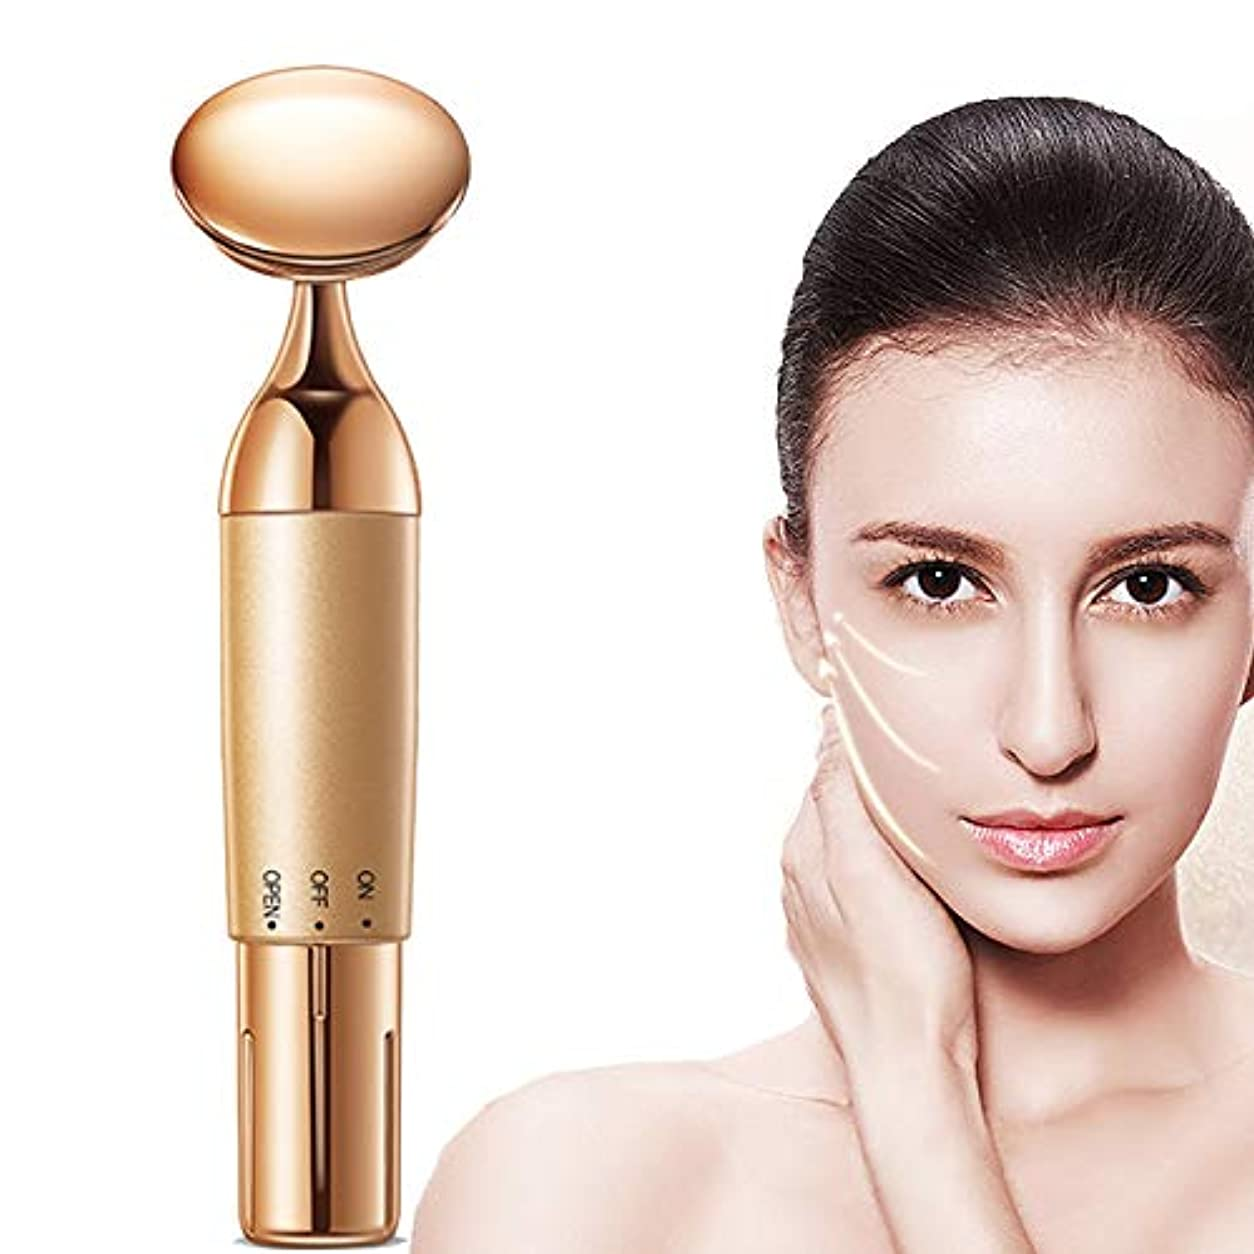 RF lifting device Facial beauty massager facial lifting firming wrinkle removal eye bags roller